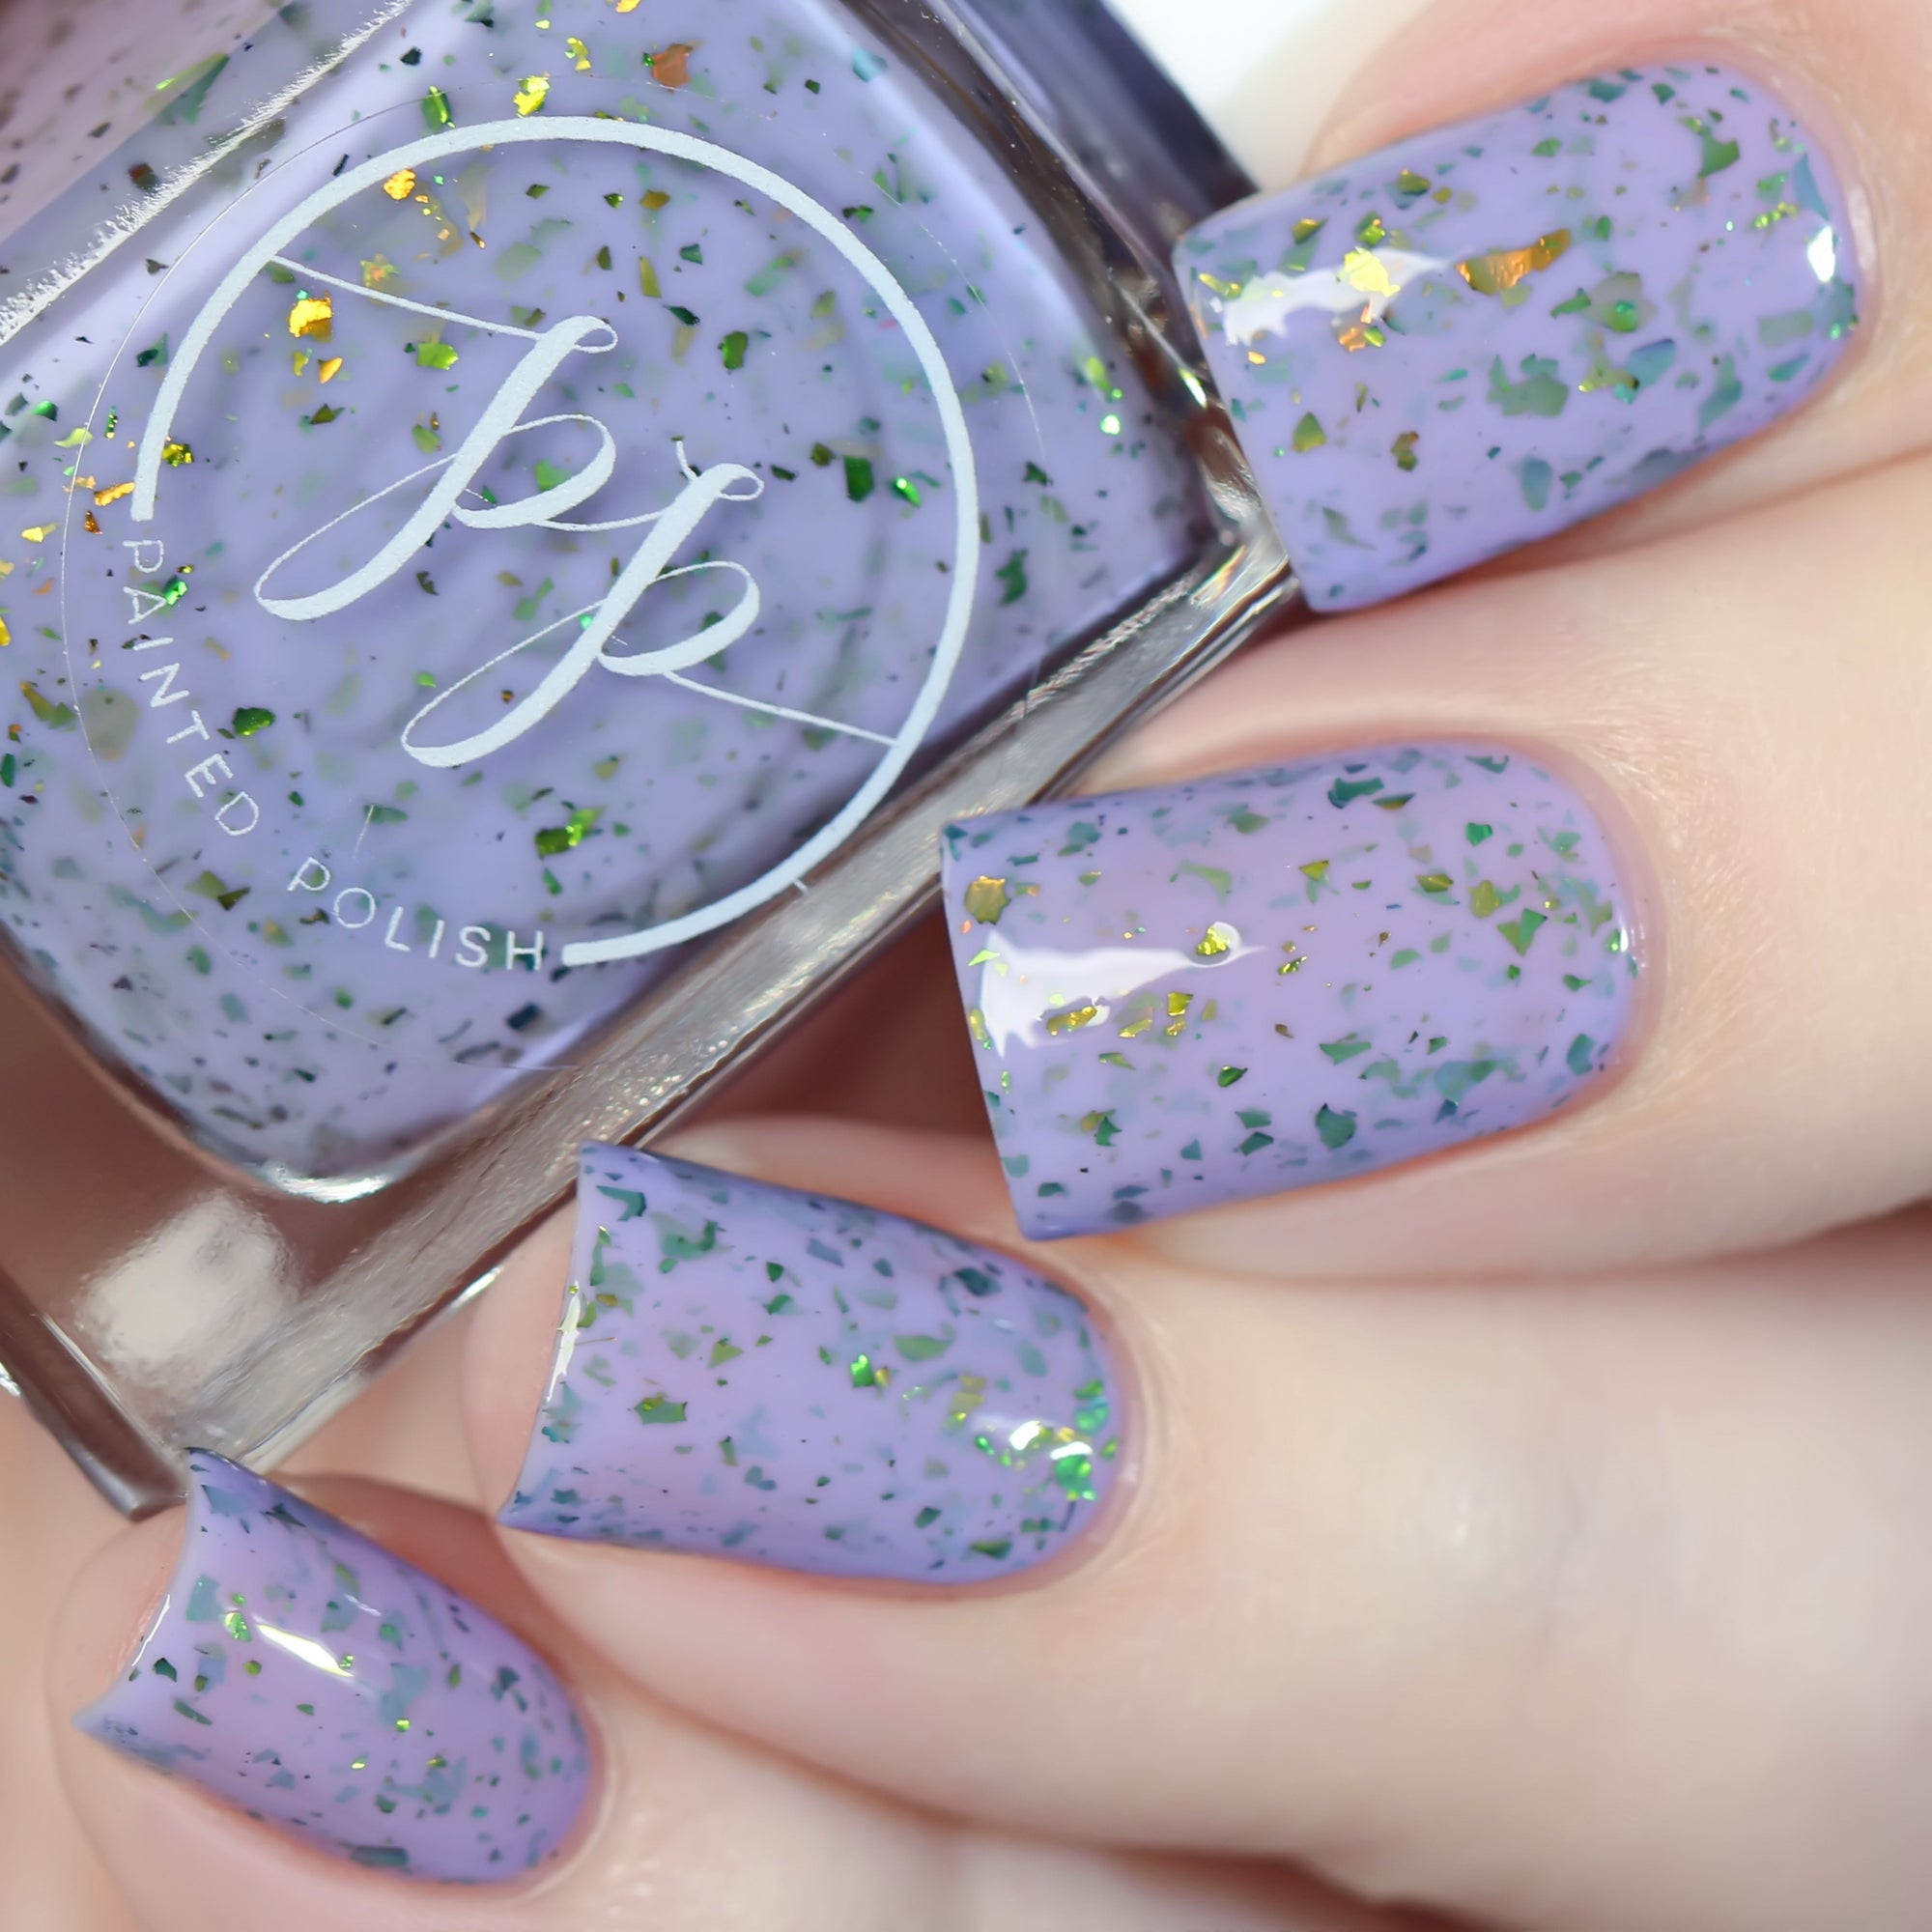 Painted Polish - Lavender Lush